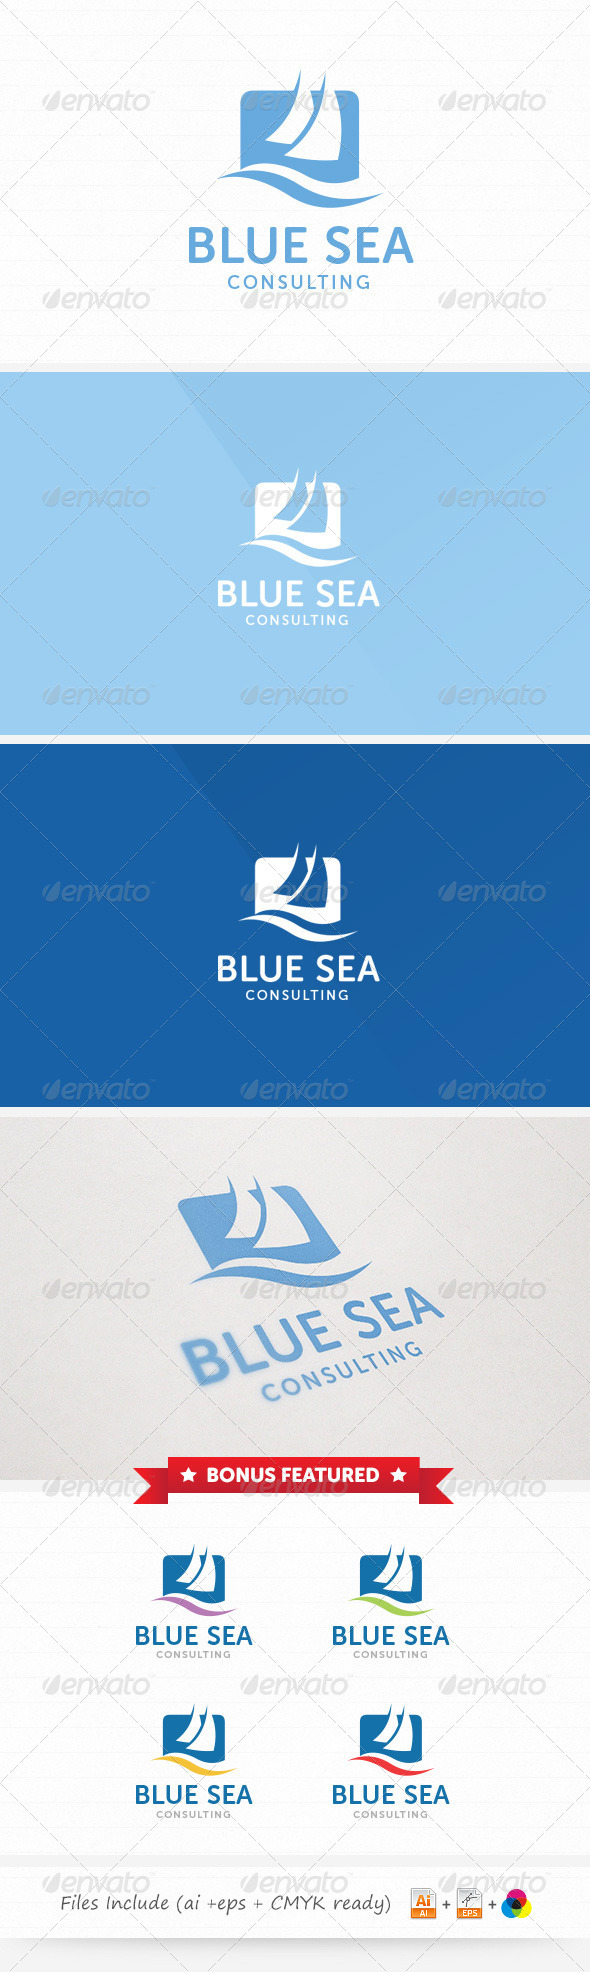 GraphicRiver Blue Sea Consulting Logo 6135418